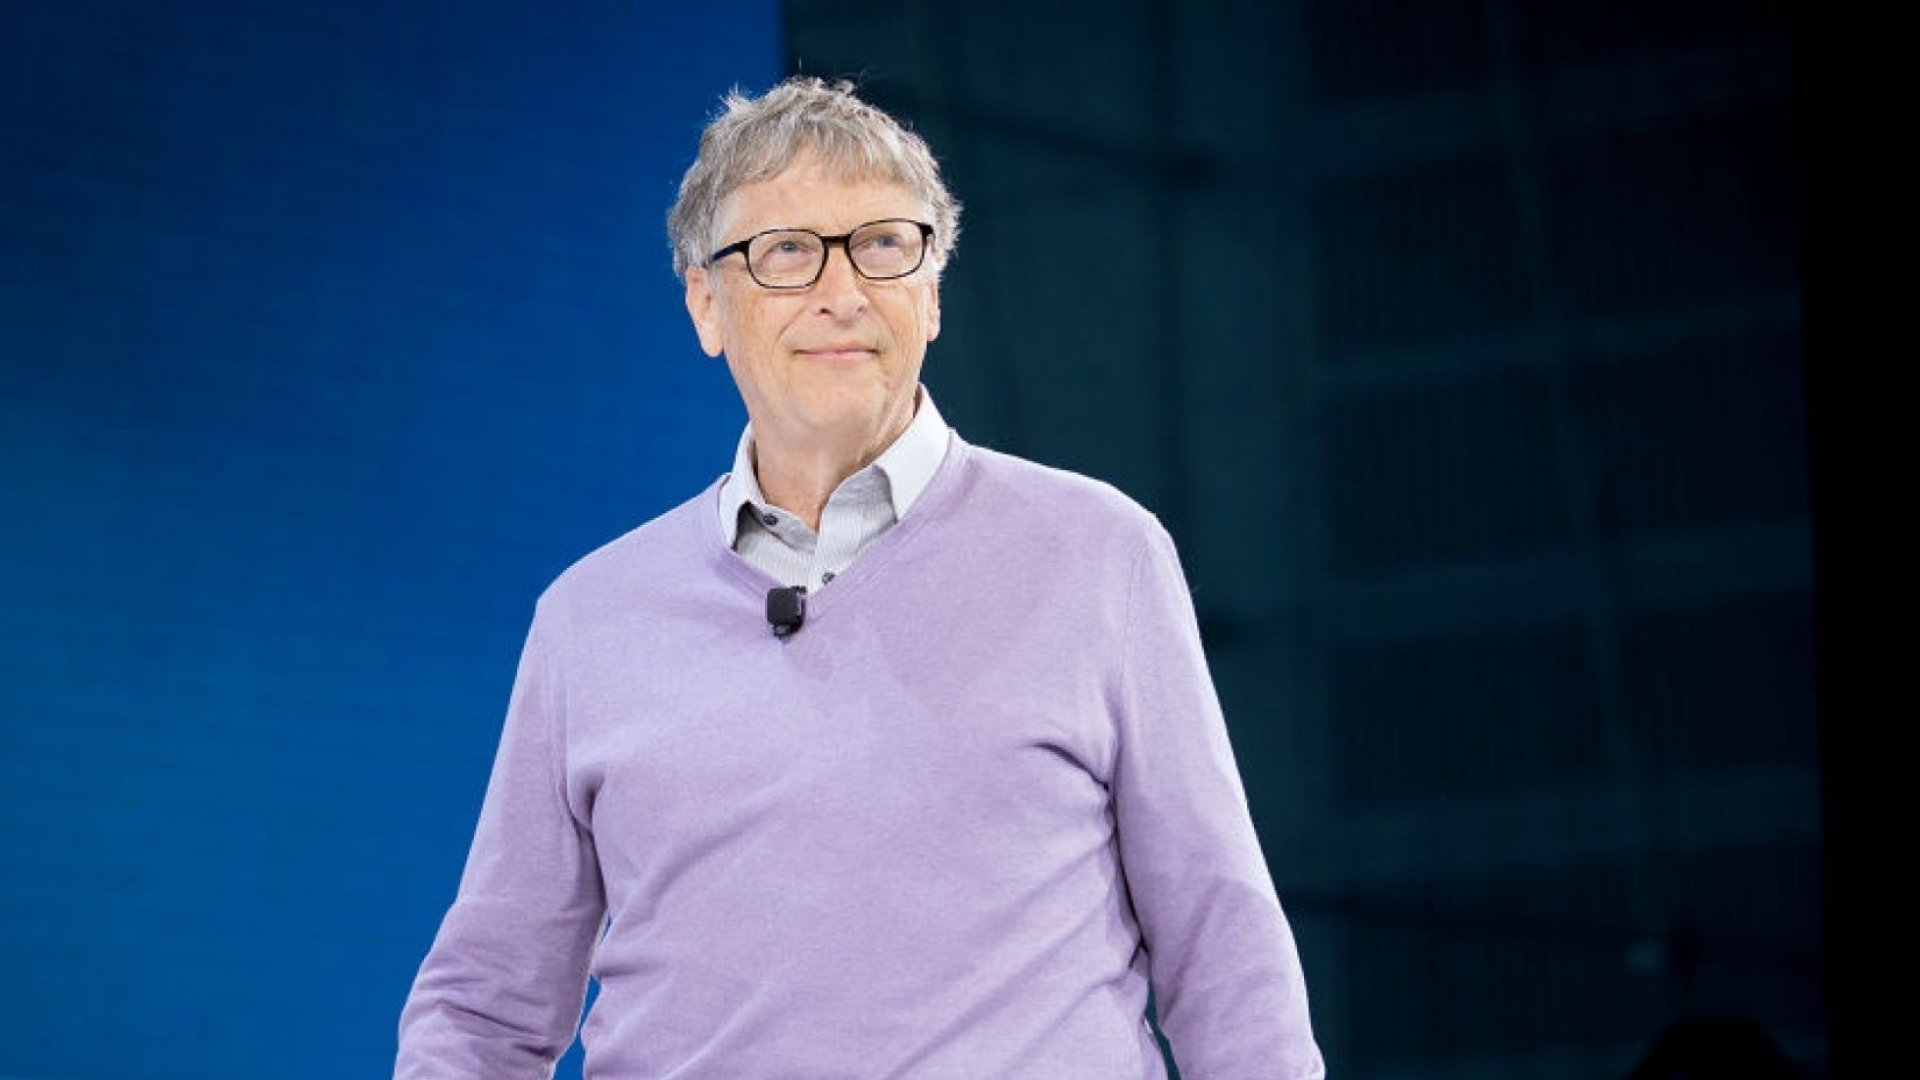 15 richest people in the world